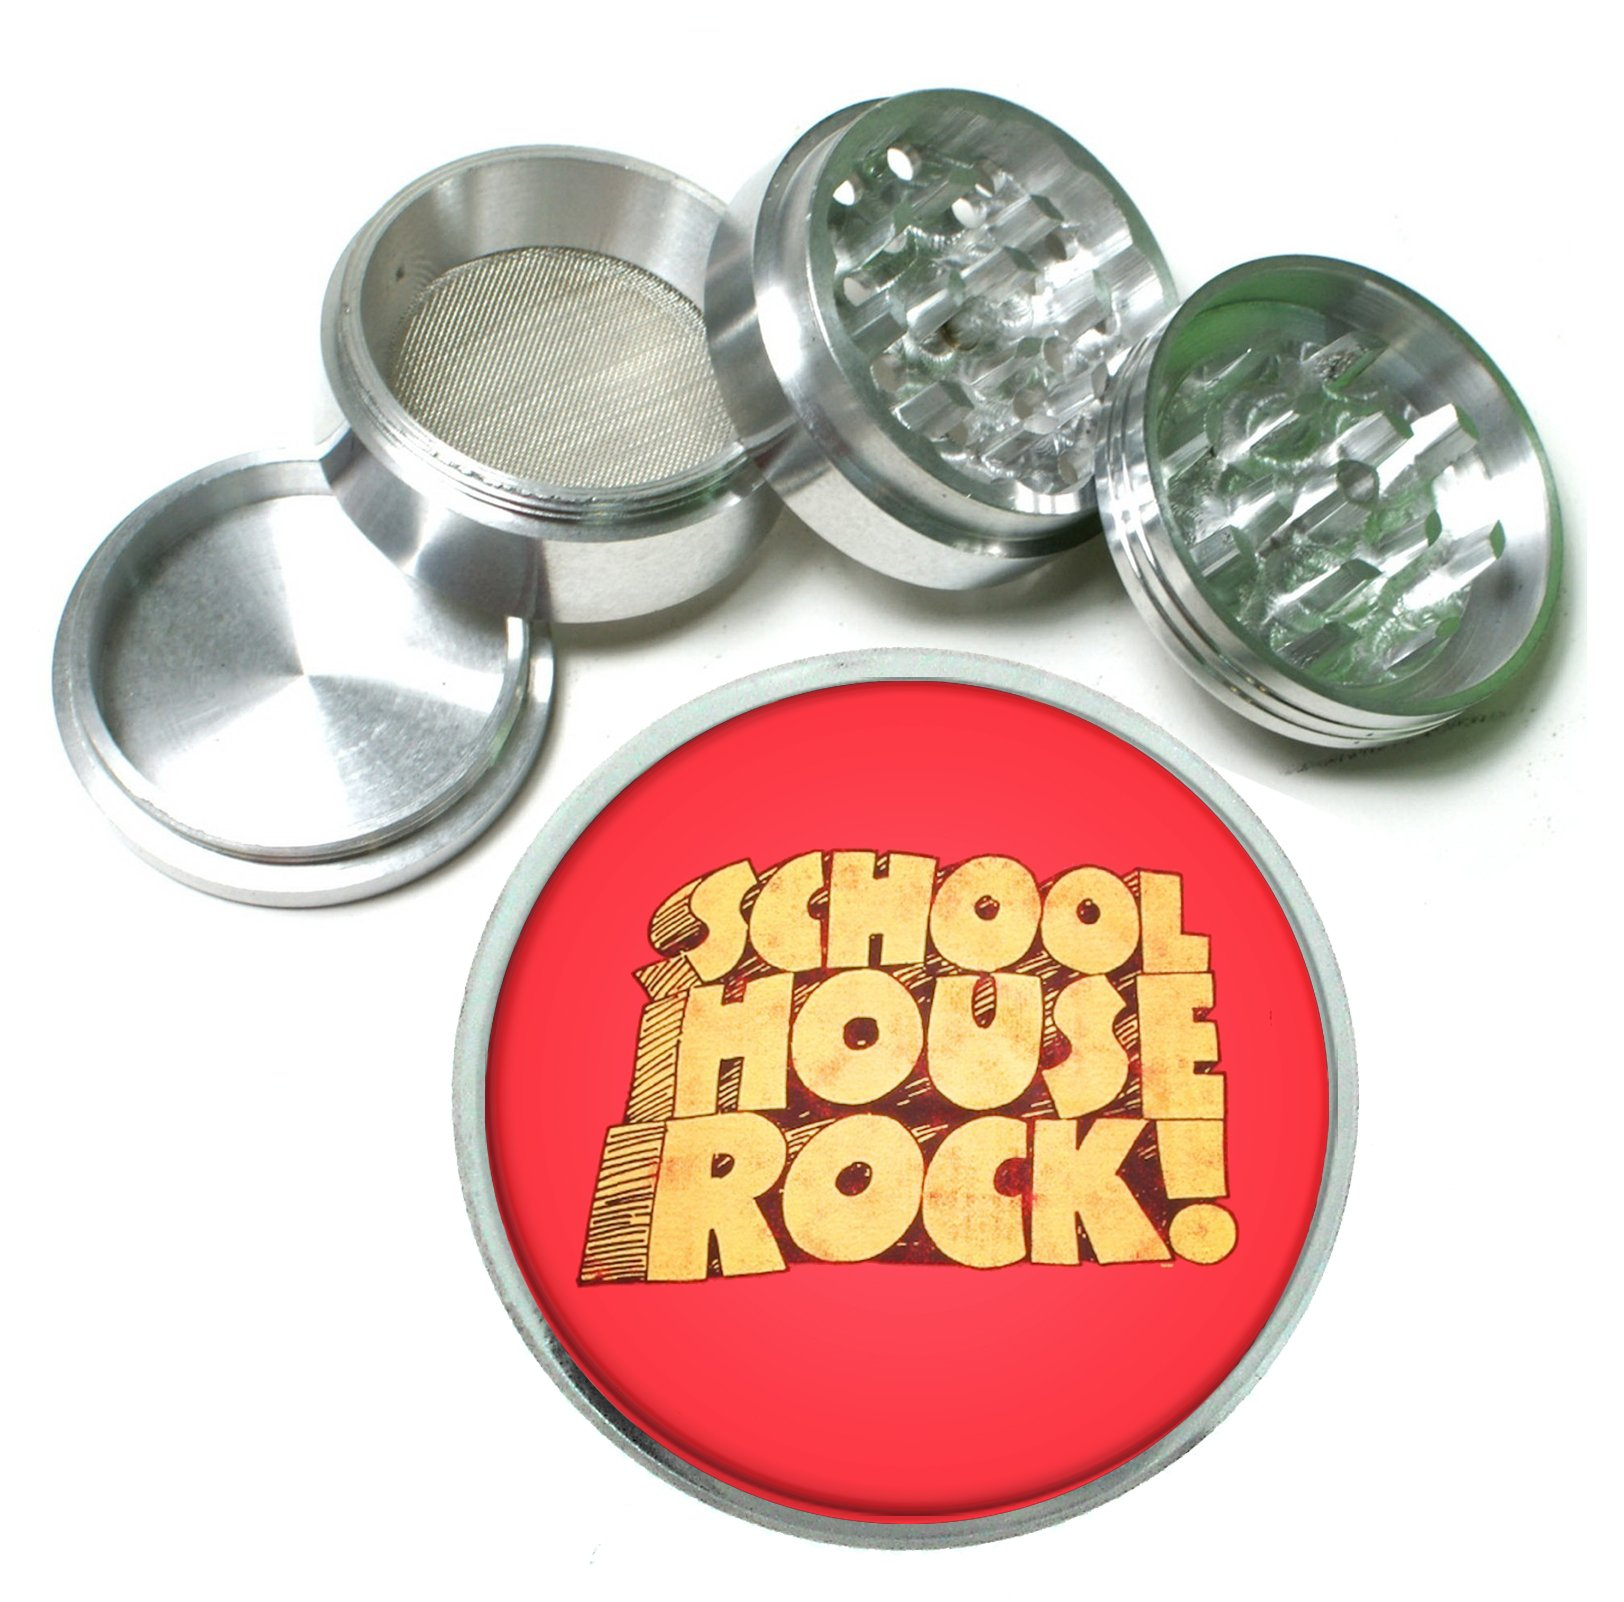 School House Rock Retro 4 Pc. Aluminum Tobacco Spice Herb Grinder